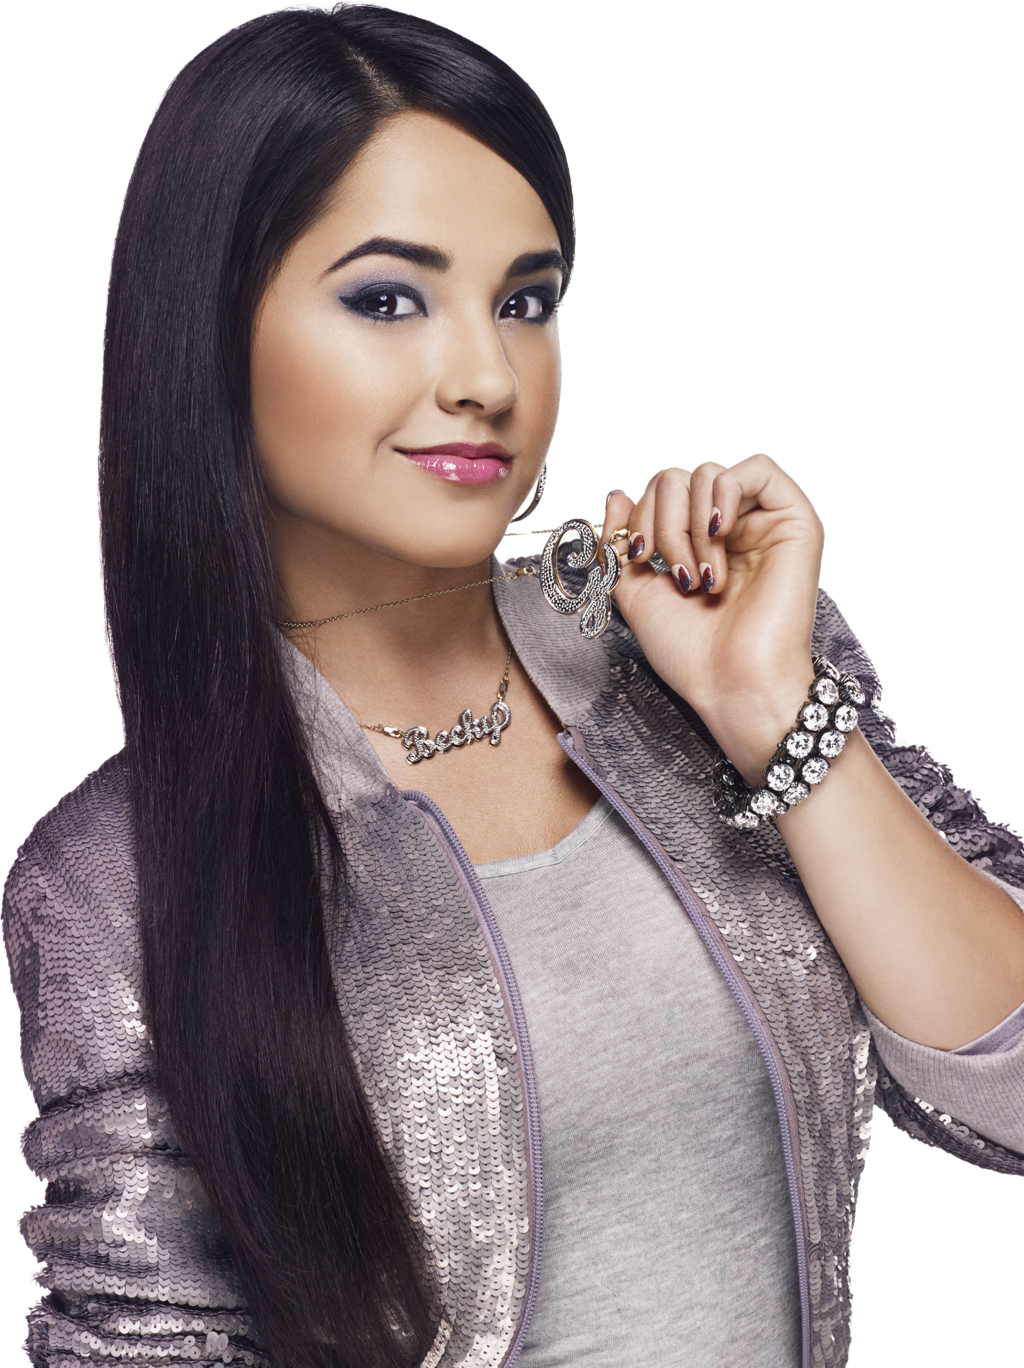 Becky G Transparent Background